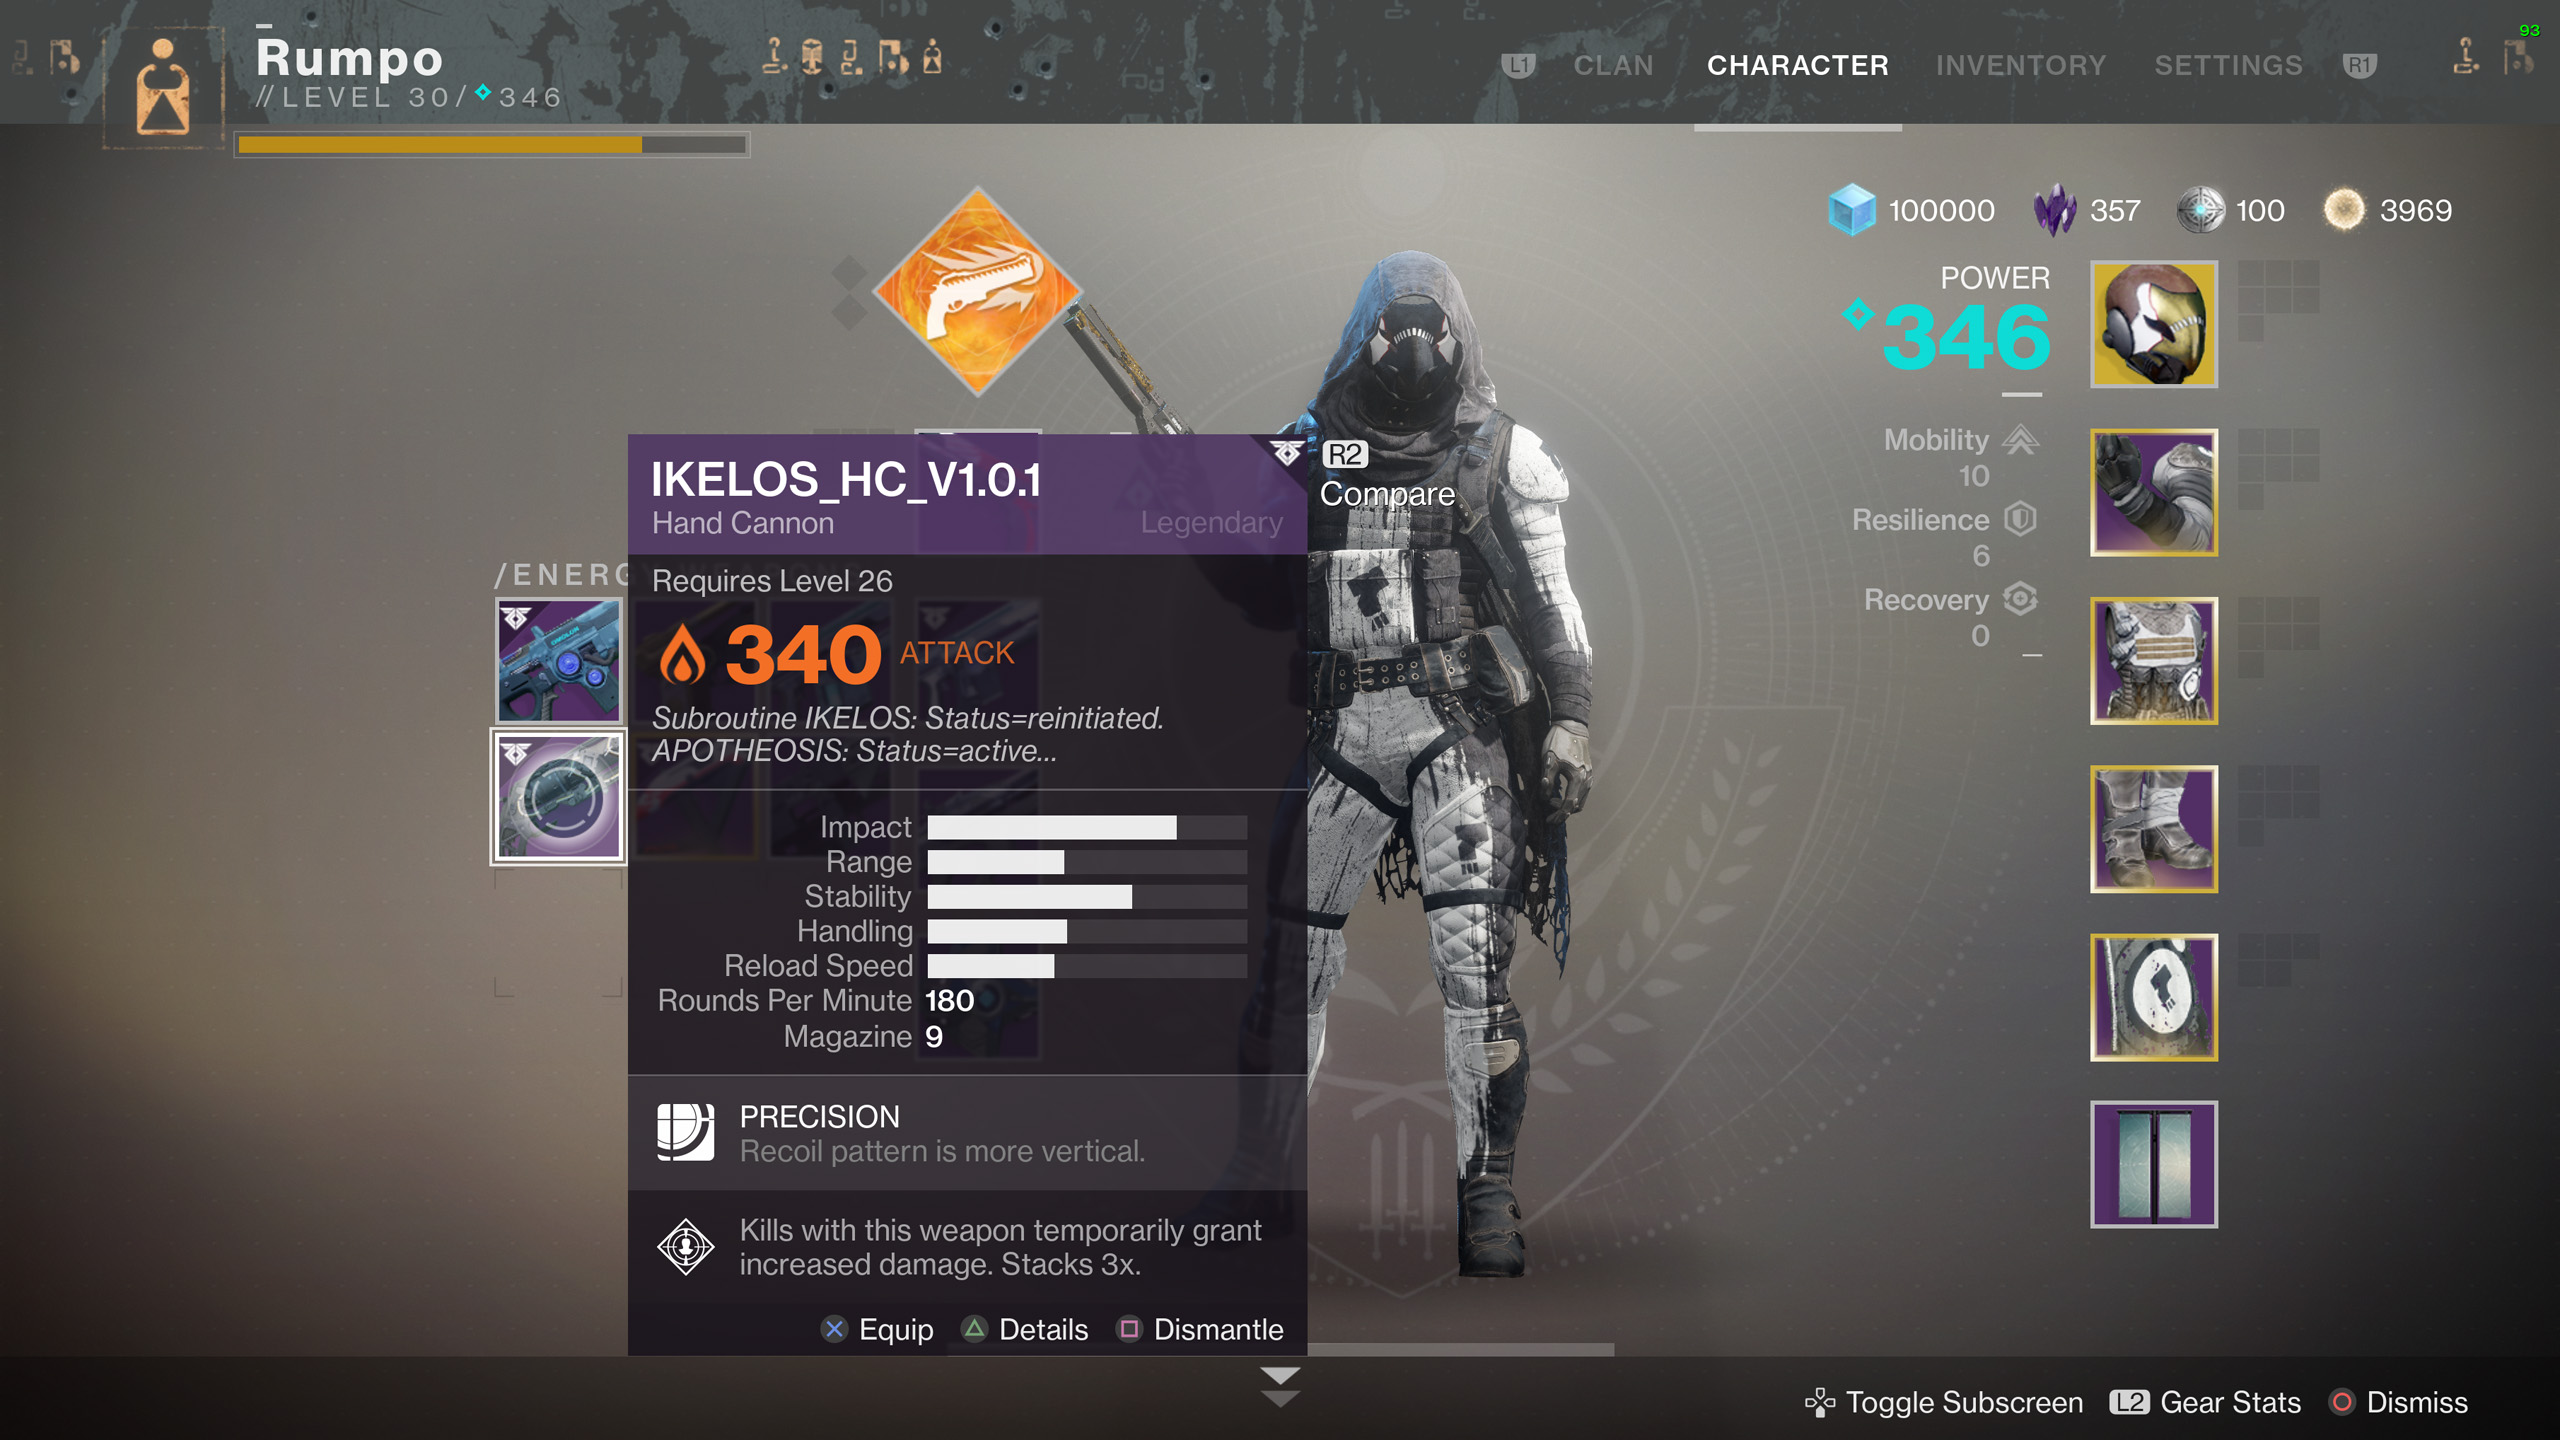 How to get the ikelos hc v101 in destiny 2 shacknews once the main warmind story missions are complete a visit to ana bray will unlock a world quest the icons for these quests look gumiabroncs Gallery